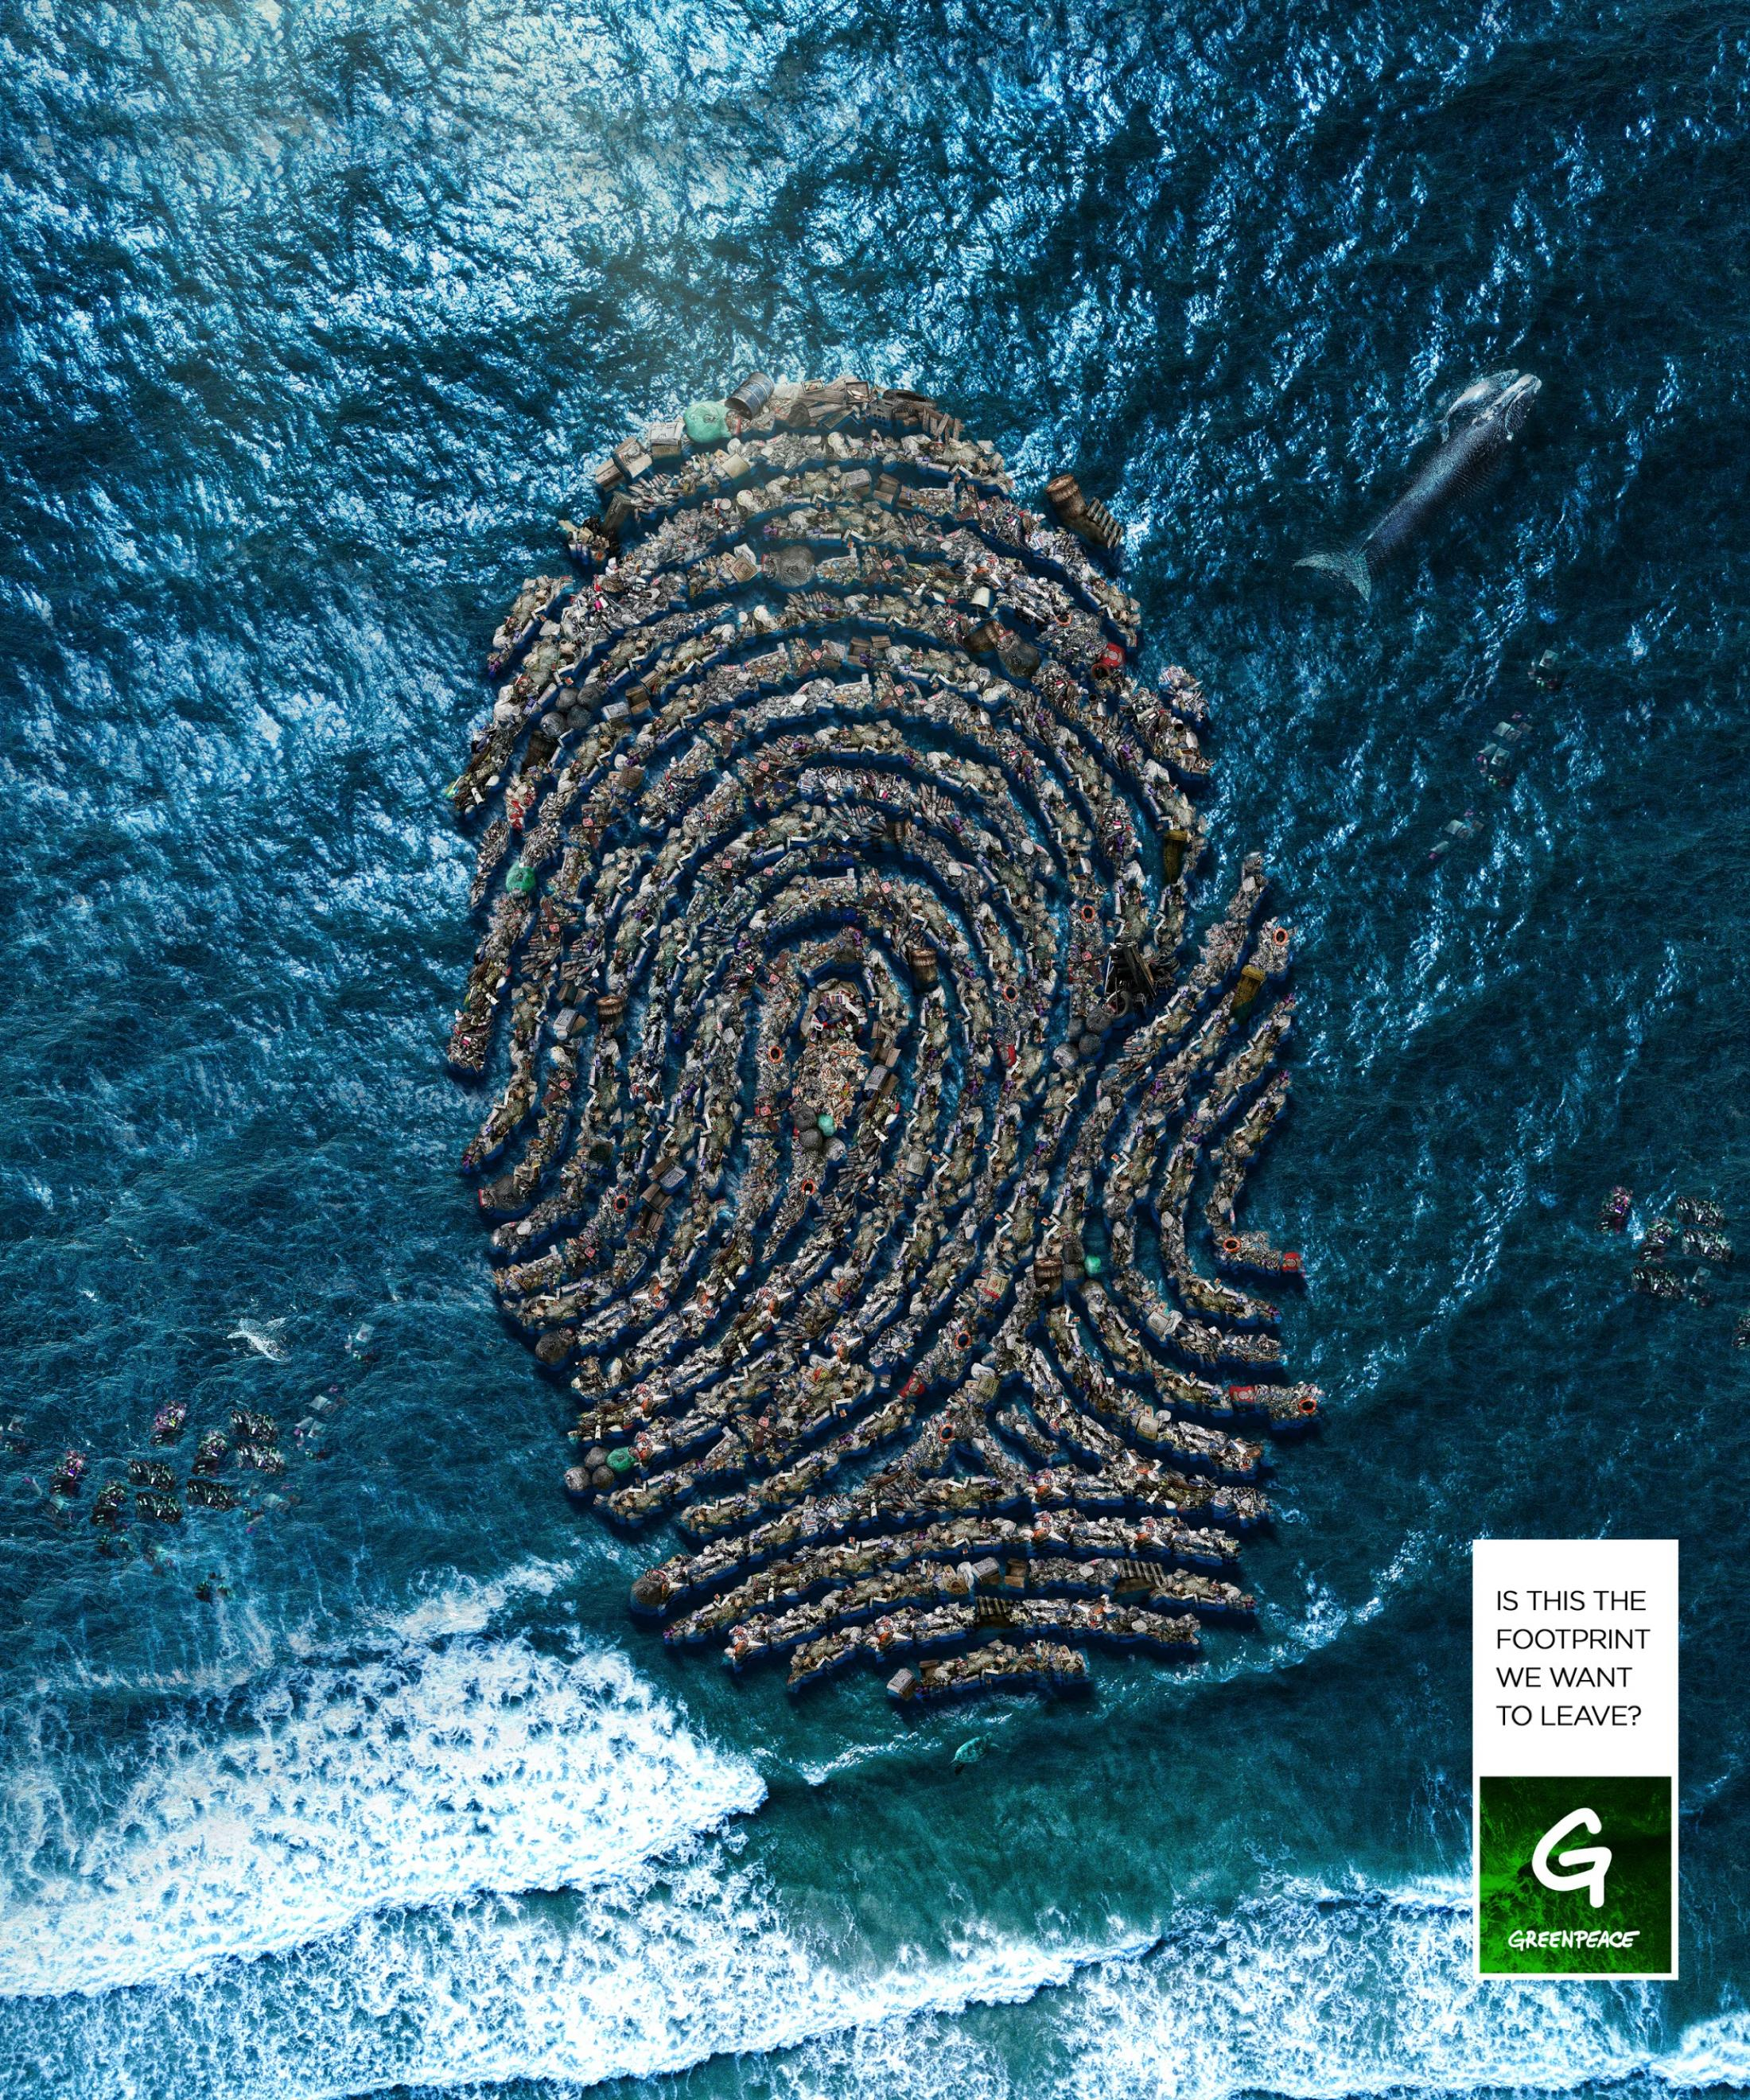 Greenpeace Print Ad - The Pollution Footprint, 3